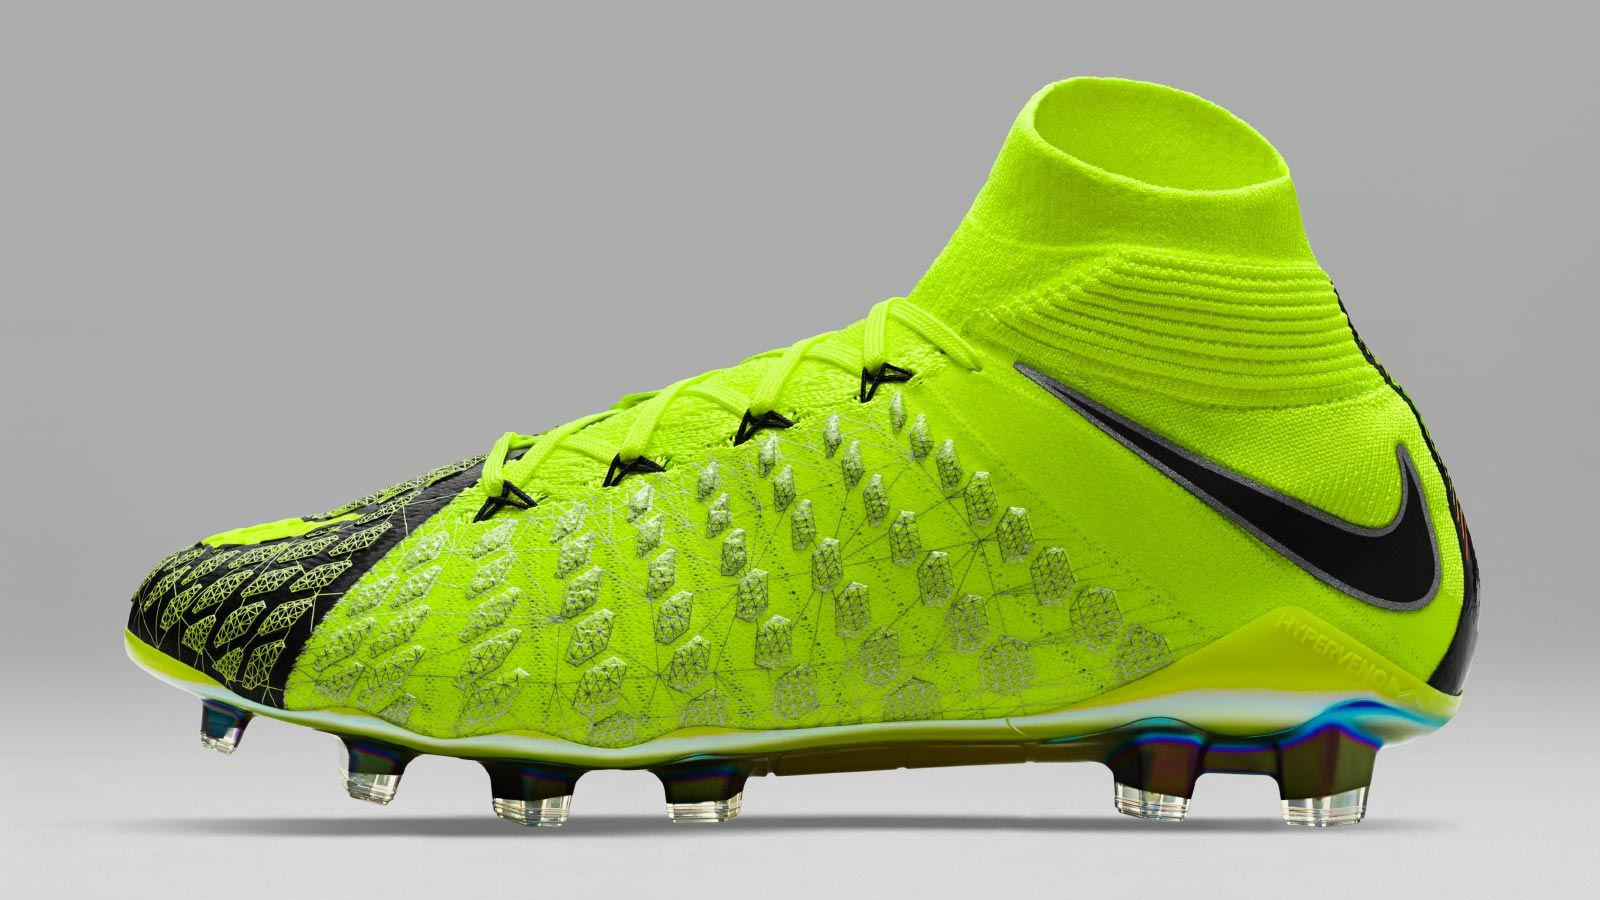 10f1ac1a881 The limited-edition Nike Hypervenom Phantom III EA Sports boots introduce a  striking design